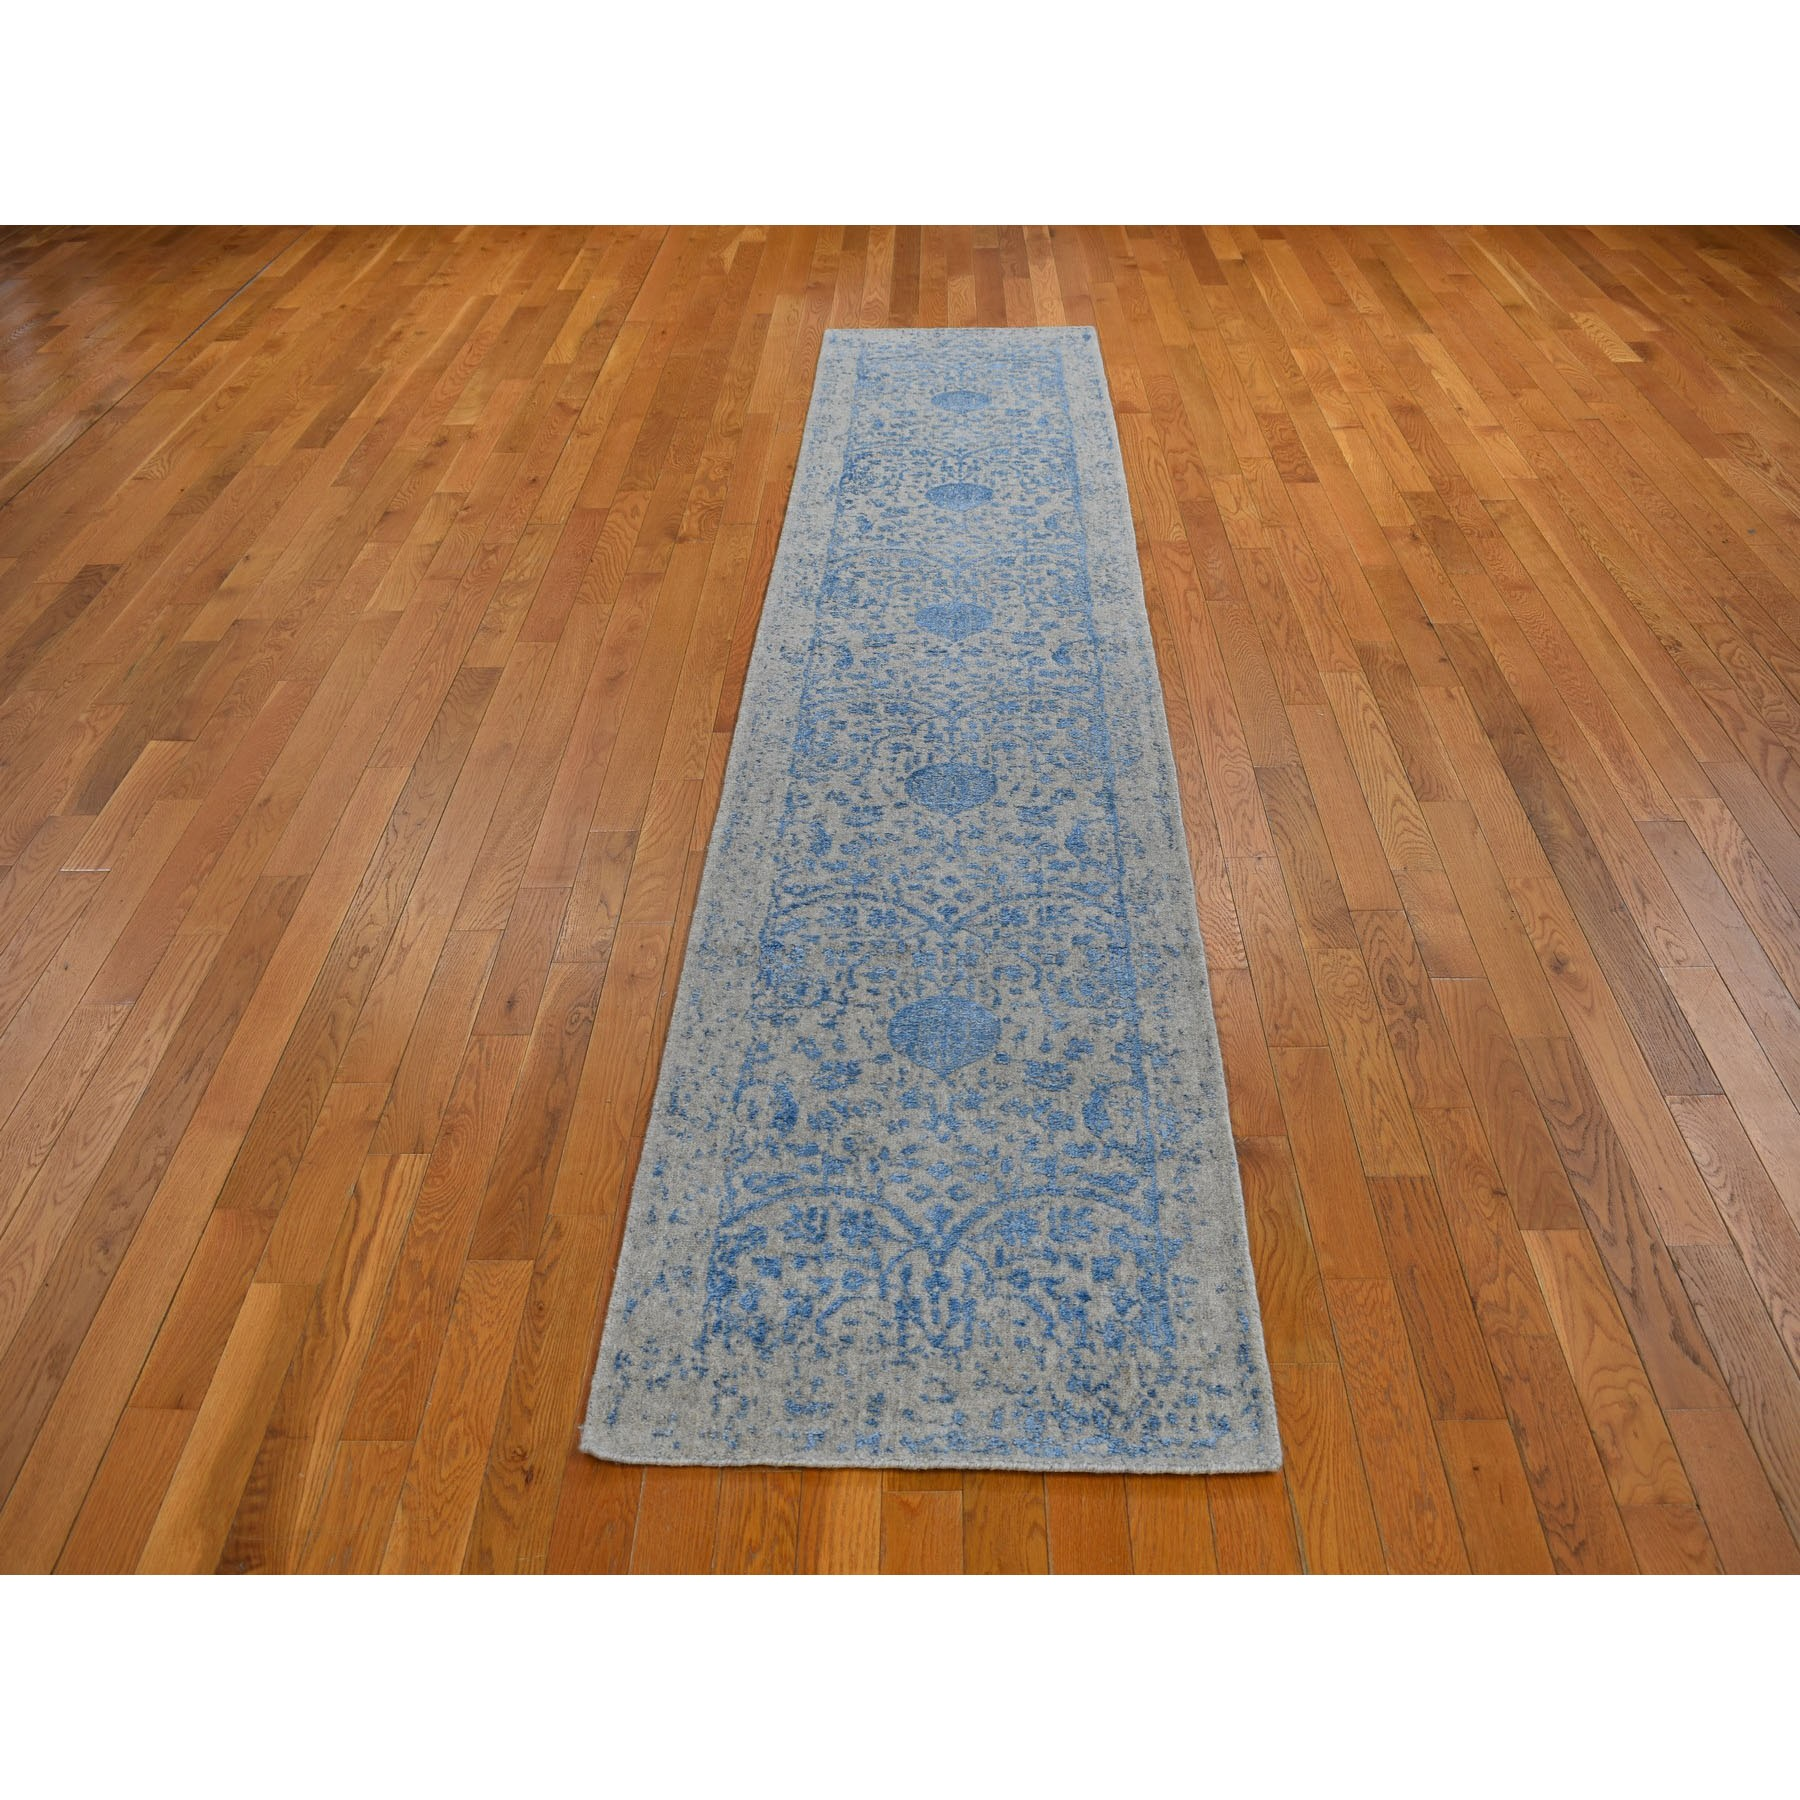 "2'5""x12' Blue Jacquard Hand Loomed Wool and Art Silk Pomegranate Design Runner Oriental Rug"